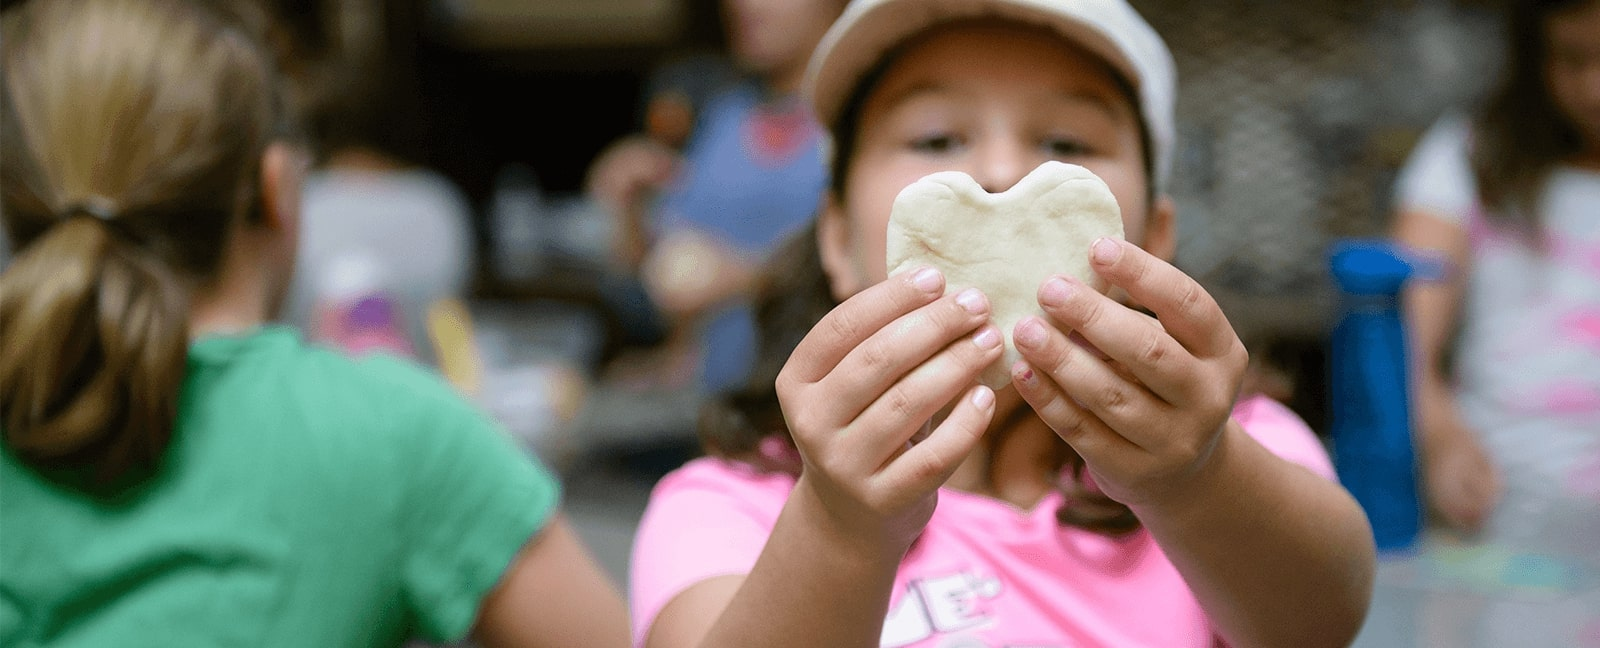 Child holding up a heart made out of dough in a Kids in the kitchen class at the Kitchener Market.